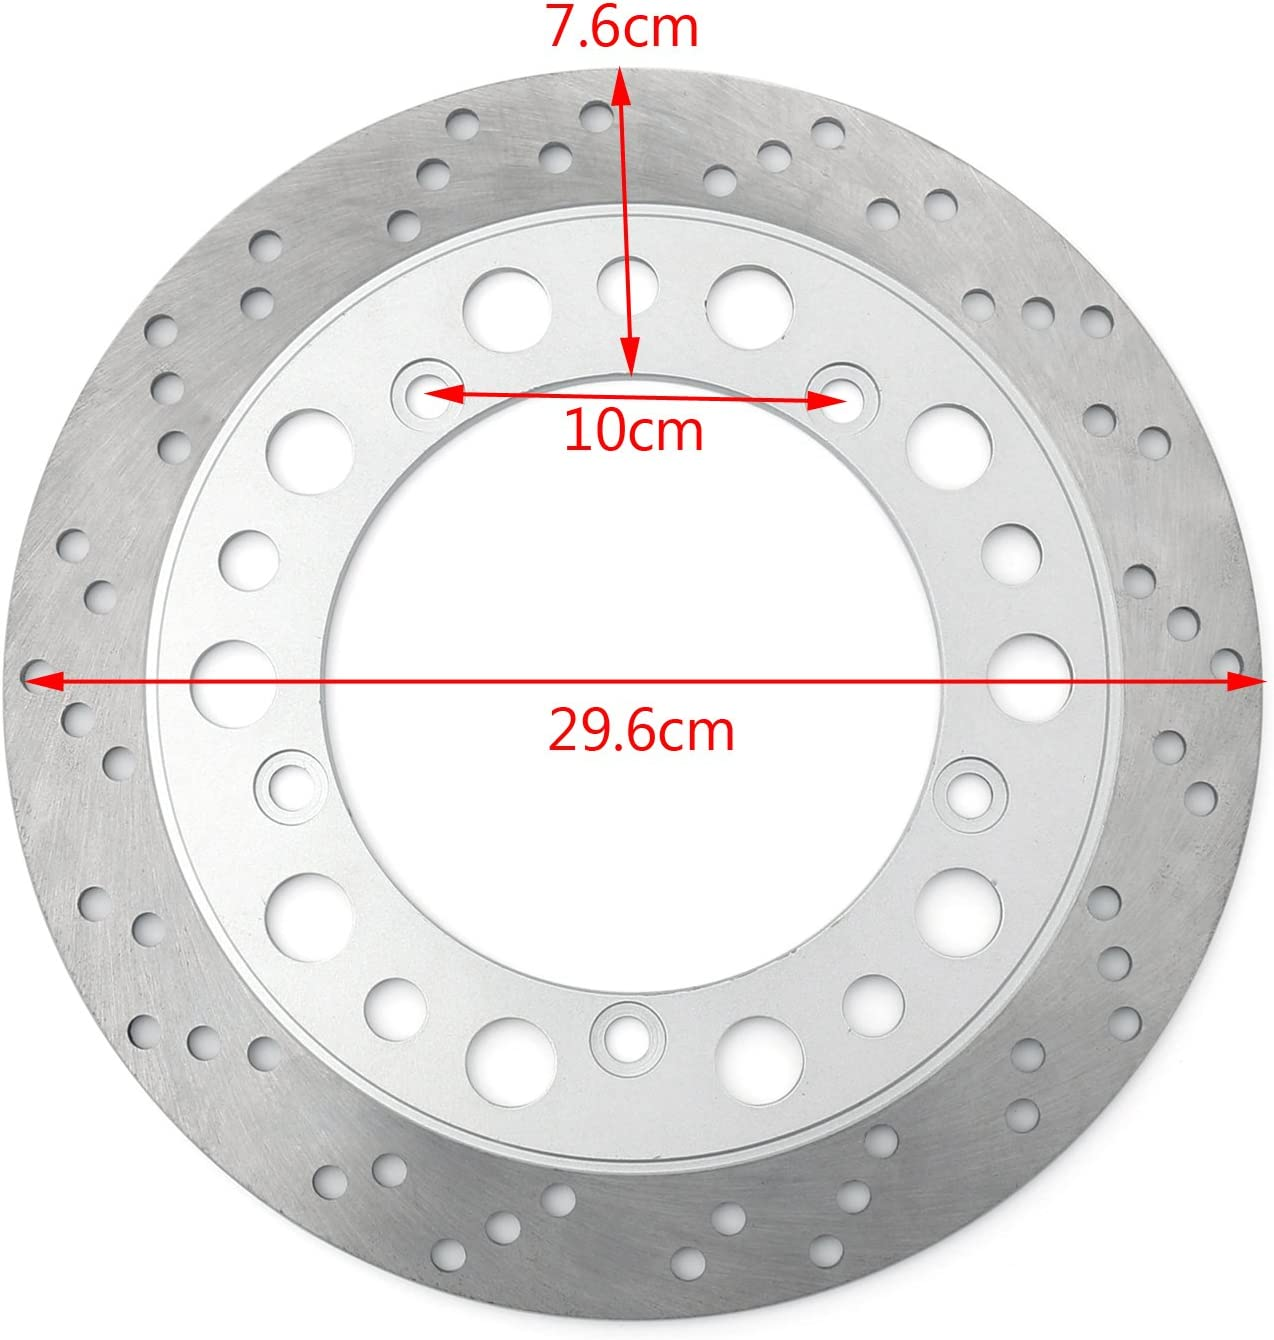 Artudatech Front Brake Disc Rotor for Hon-da Steed 400 92-97 VT600 Shadow VLX 99-07 FT500C Shadow